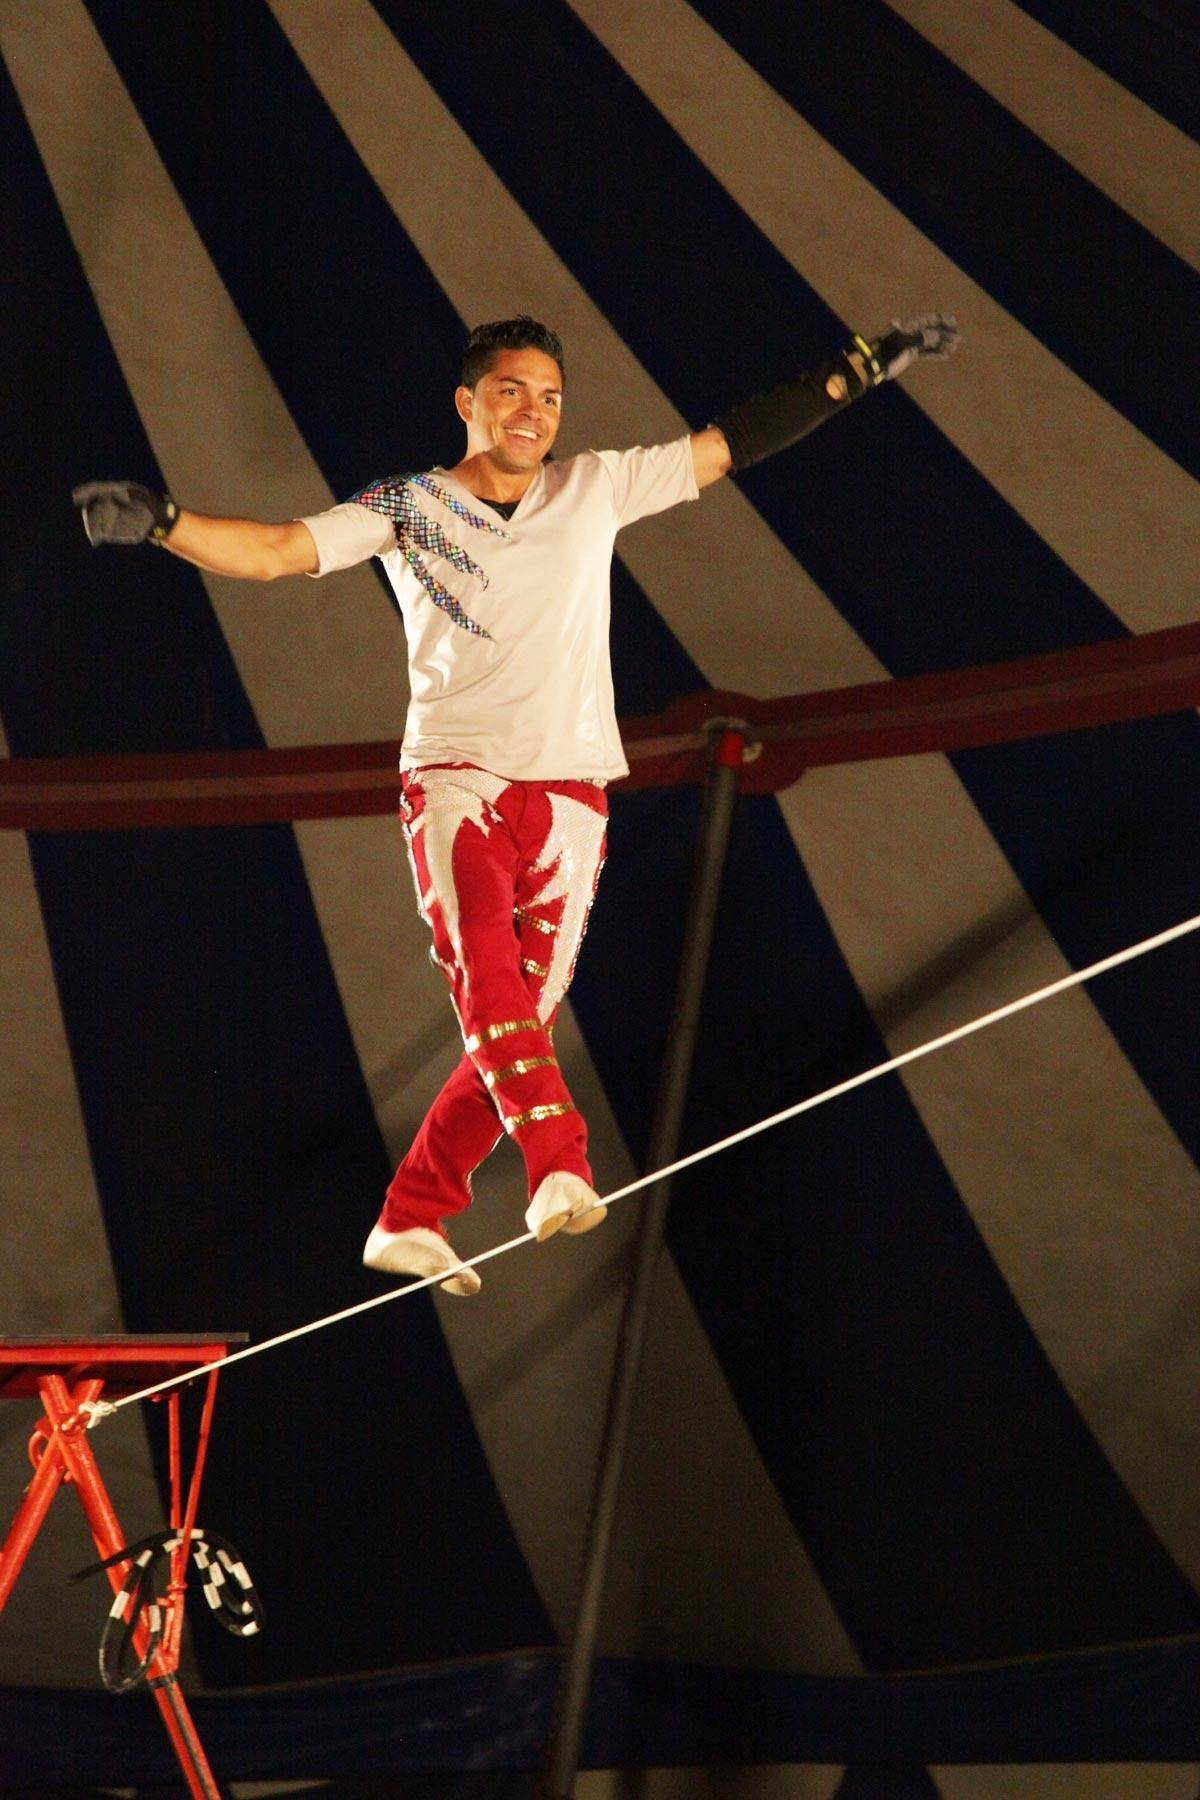 the Wheel of Destiny & Tight Rope by The Los Moralitos will perform at the Culpepper & Merriweather Circus in Hampshire.